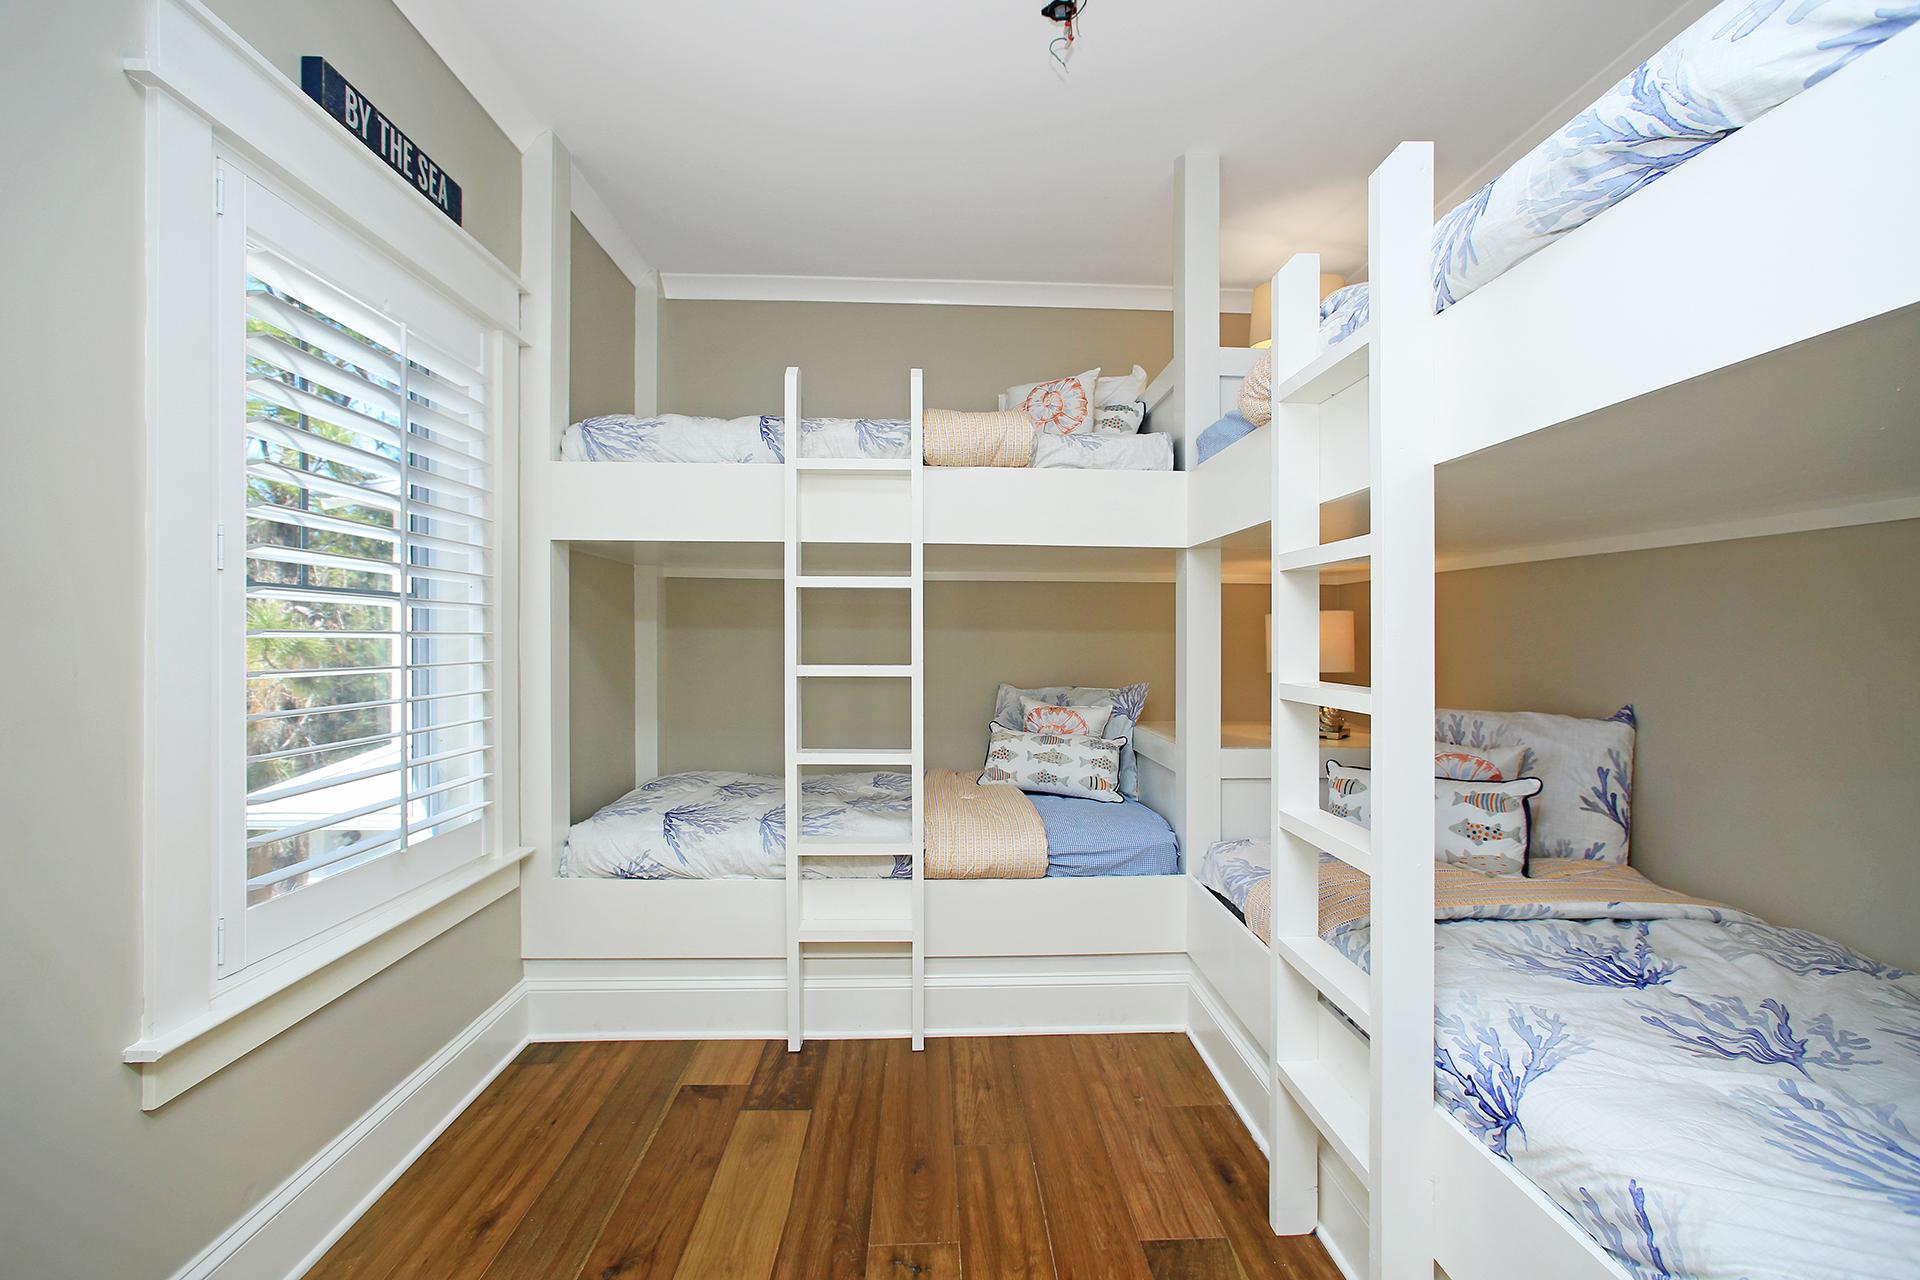 SeaCourt | 30A Luxury Vacation Rentals